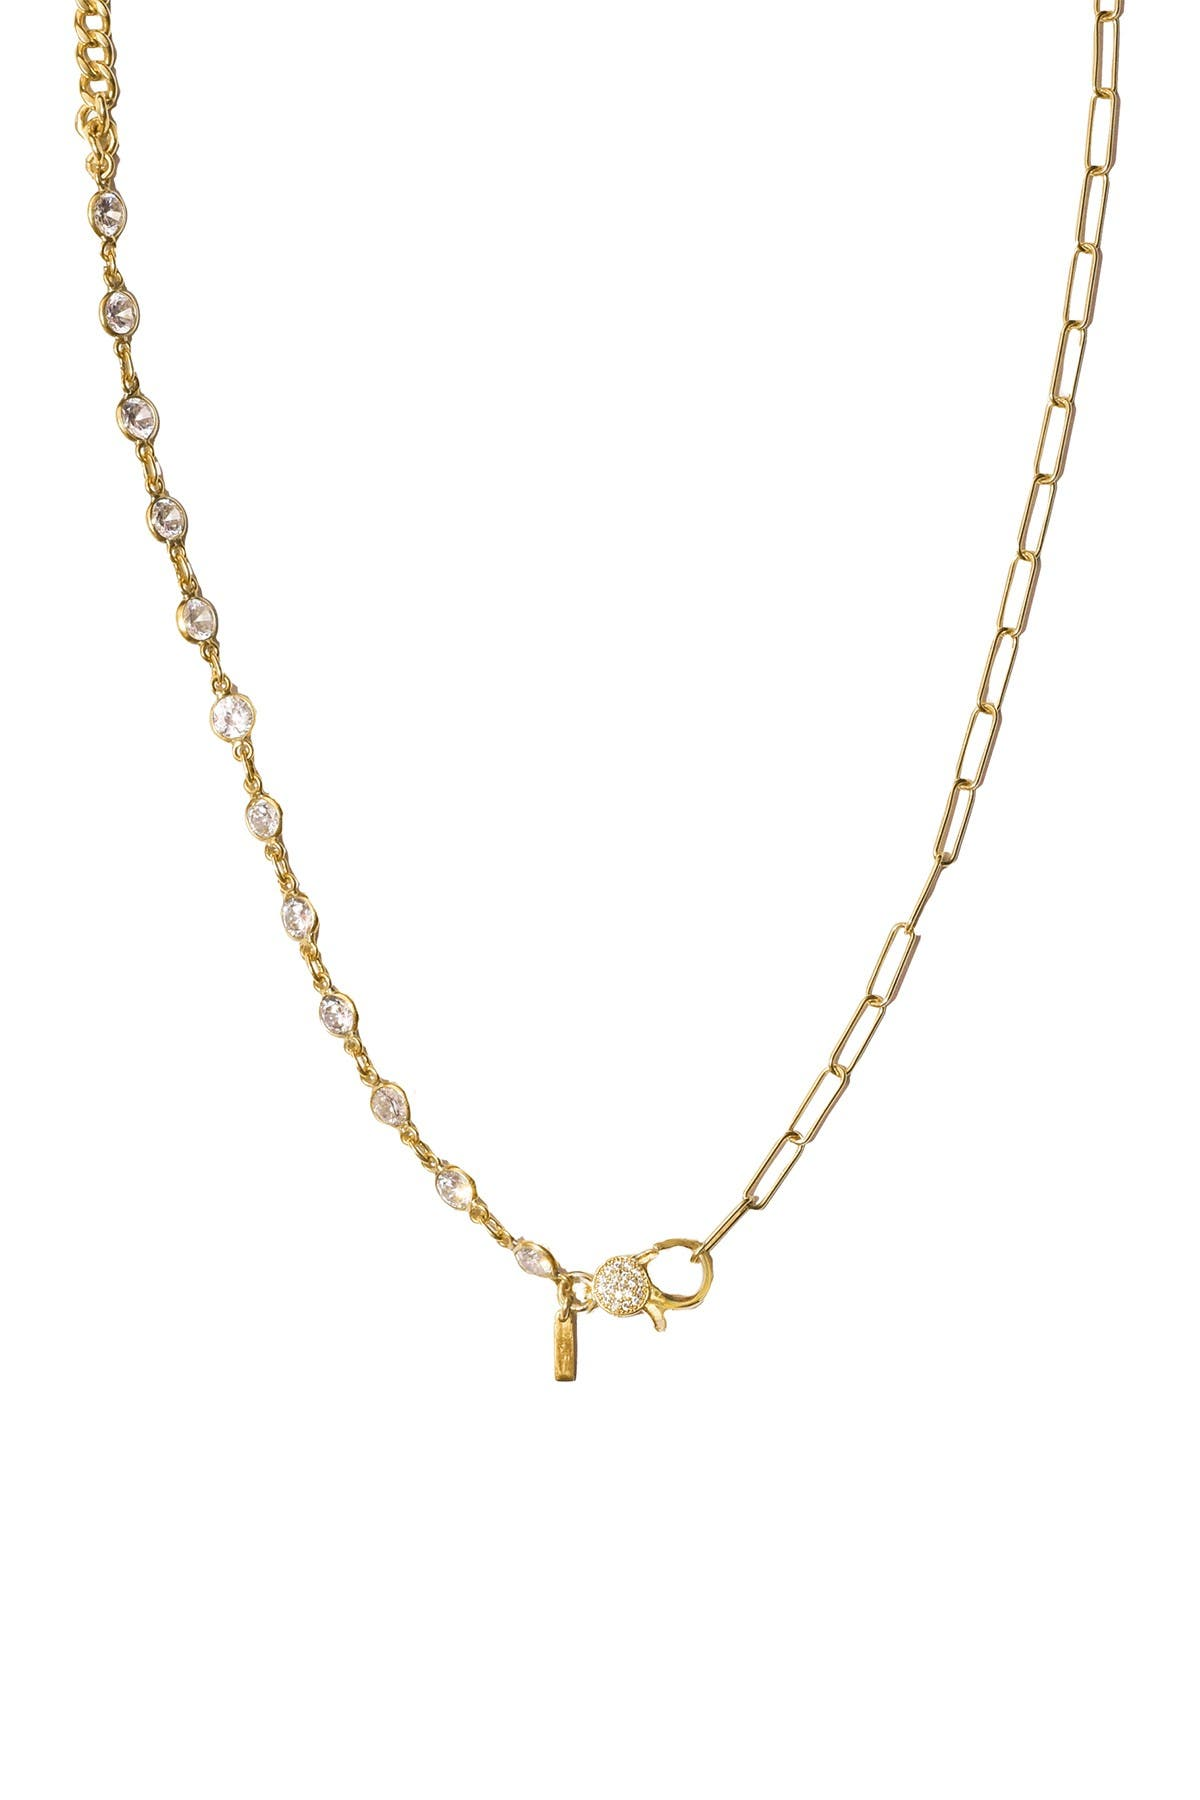 Image of ADORNIA 14K Yellow Gold Vermeil Patchwork Lock Mosaic Necklace